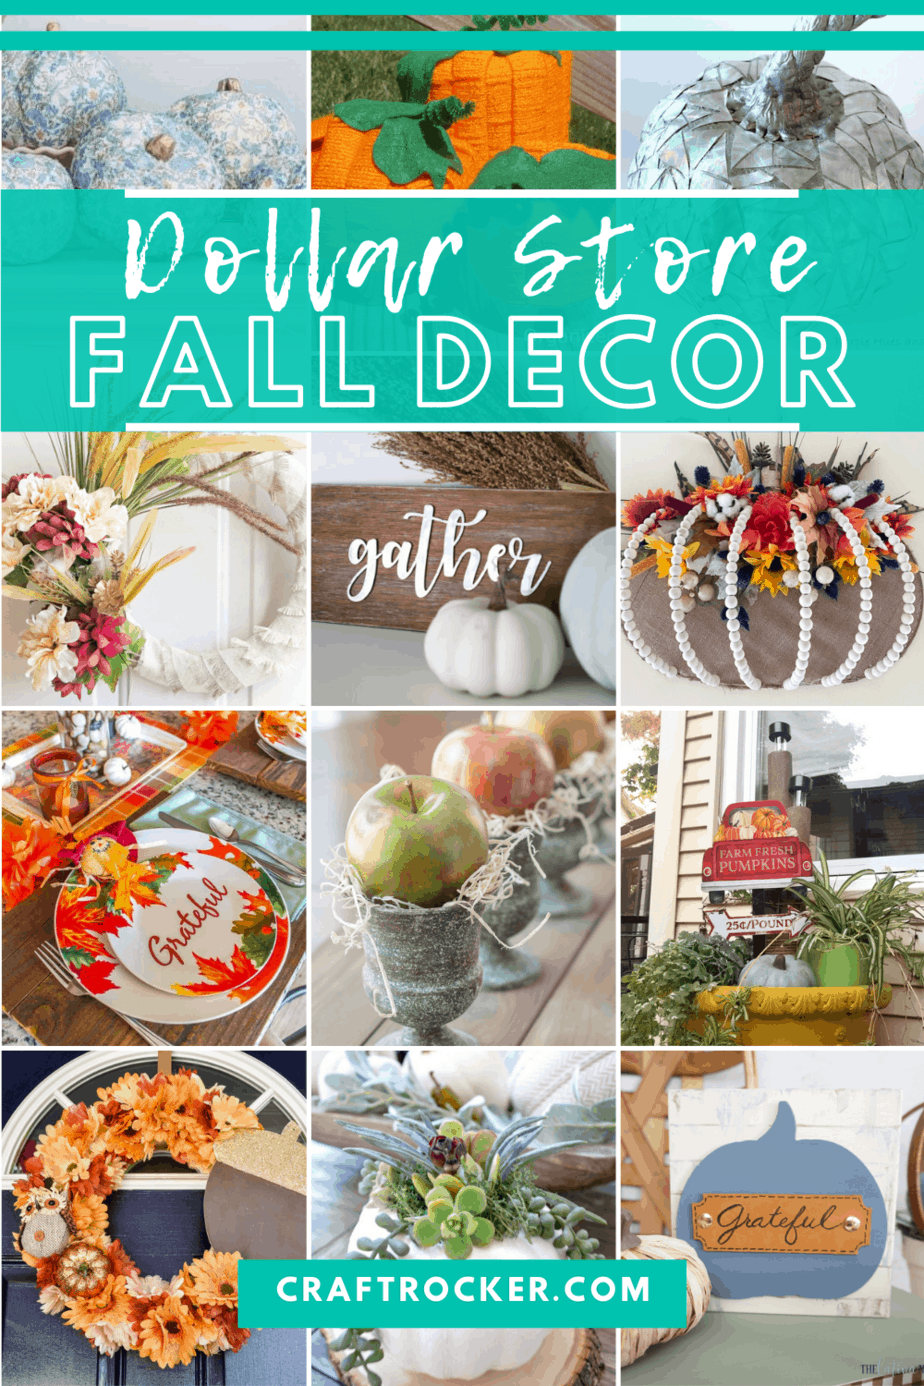 Collage of Photos of Dollar Tree Fall Decor Projects with text overlay - Dollar Store Fall Decor - Craft Rocker